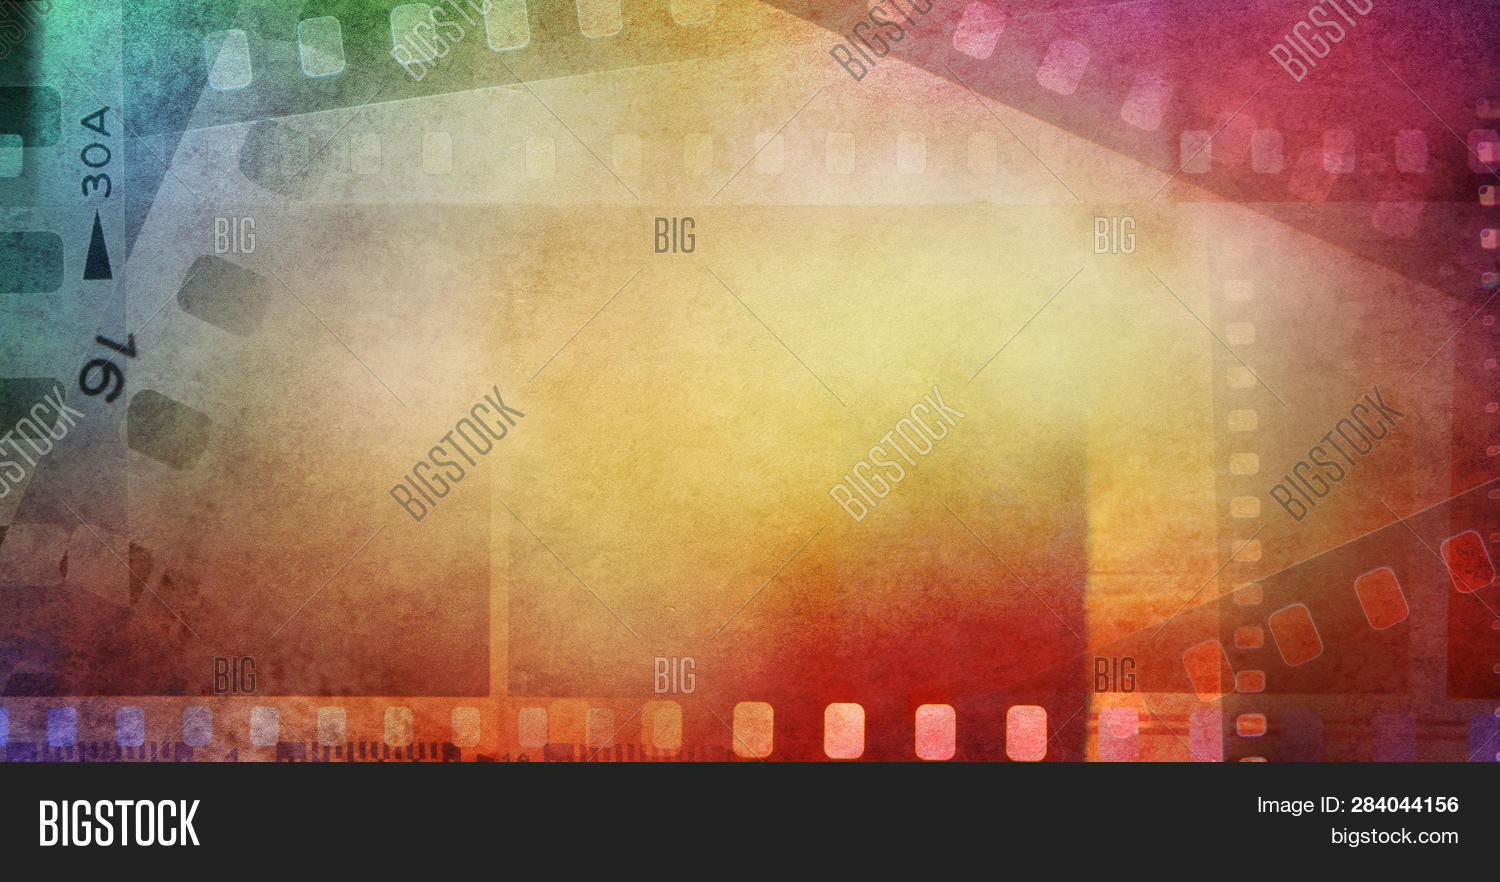 abstract,background,blank,cinema,cinematography,collage,color,colorful,composite,copy space,design,element,entertainment,exposure,film frames,film negative,film negatives,film strip,filmstrip,frame,grunge,grungy,historic,history,hollywood,macro,memories,montage,movie,negative,nobody,nostalgia,nostalgic,photo,photograph,photographic,photography,picture,retro,special effects,strip,vintage